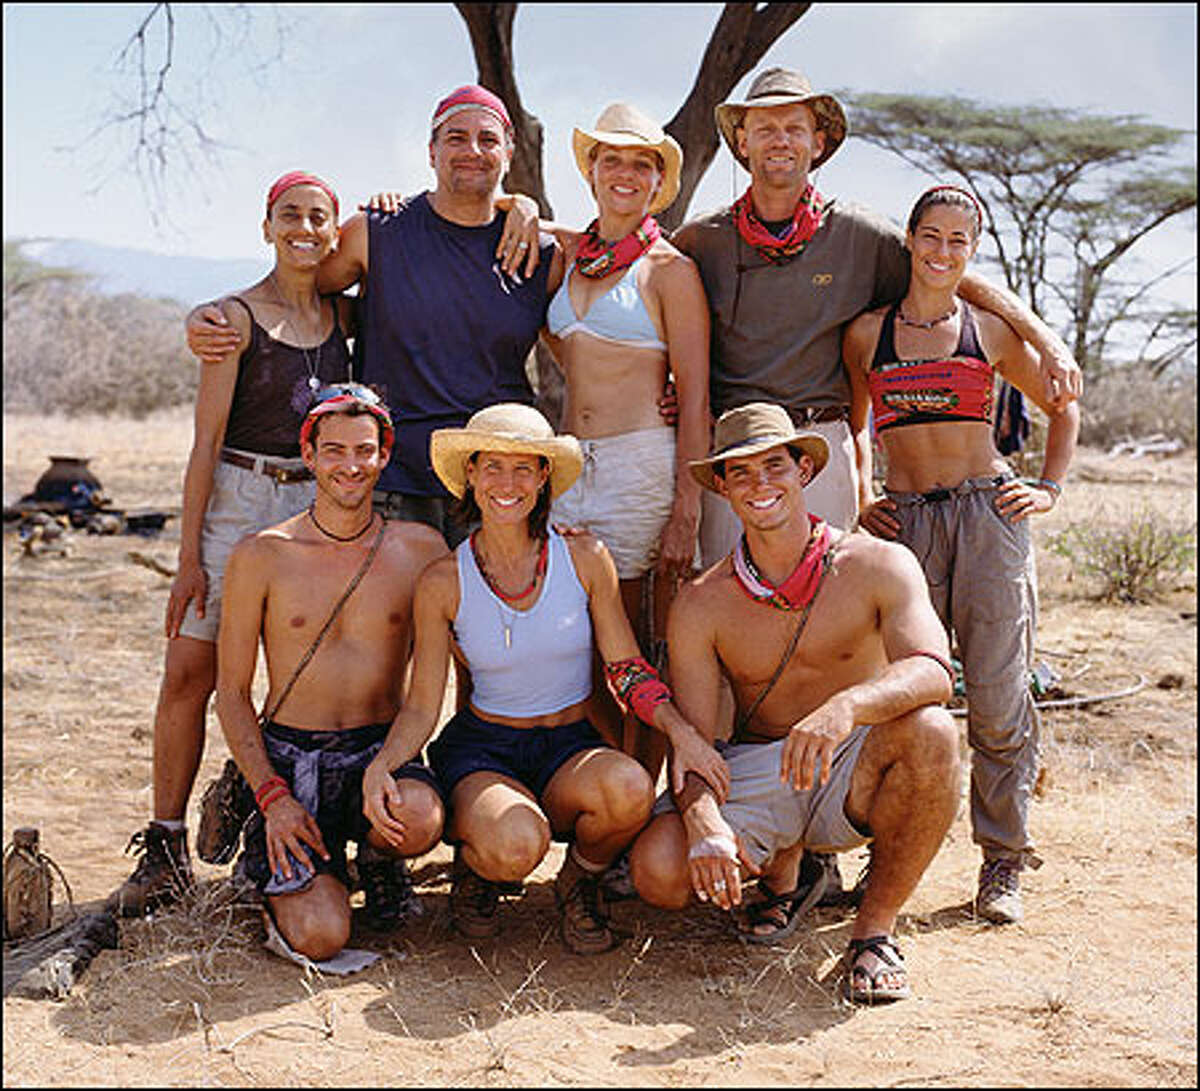 Members of the Samburu tribe: Kneeling from left, Brandon Quinton, Teresa Cooper and Silas Gaither, and, standing from left, Linda Spencer, Carl Bilancione, Lindsey Richter, Frank Garrison and Kim Powers.